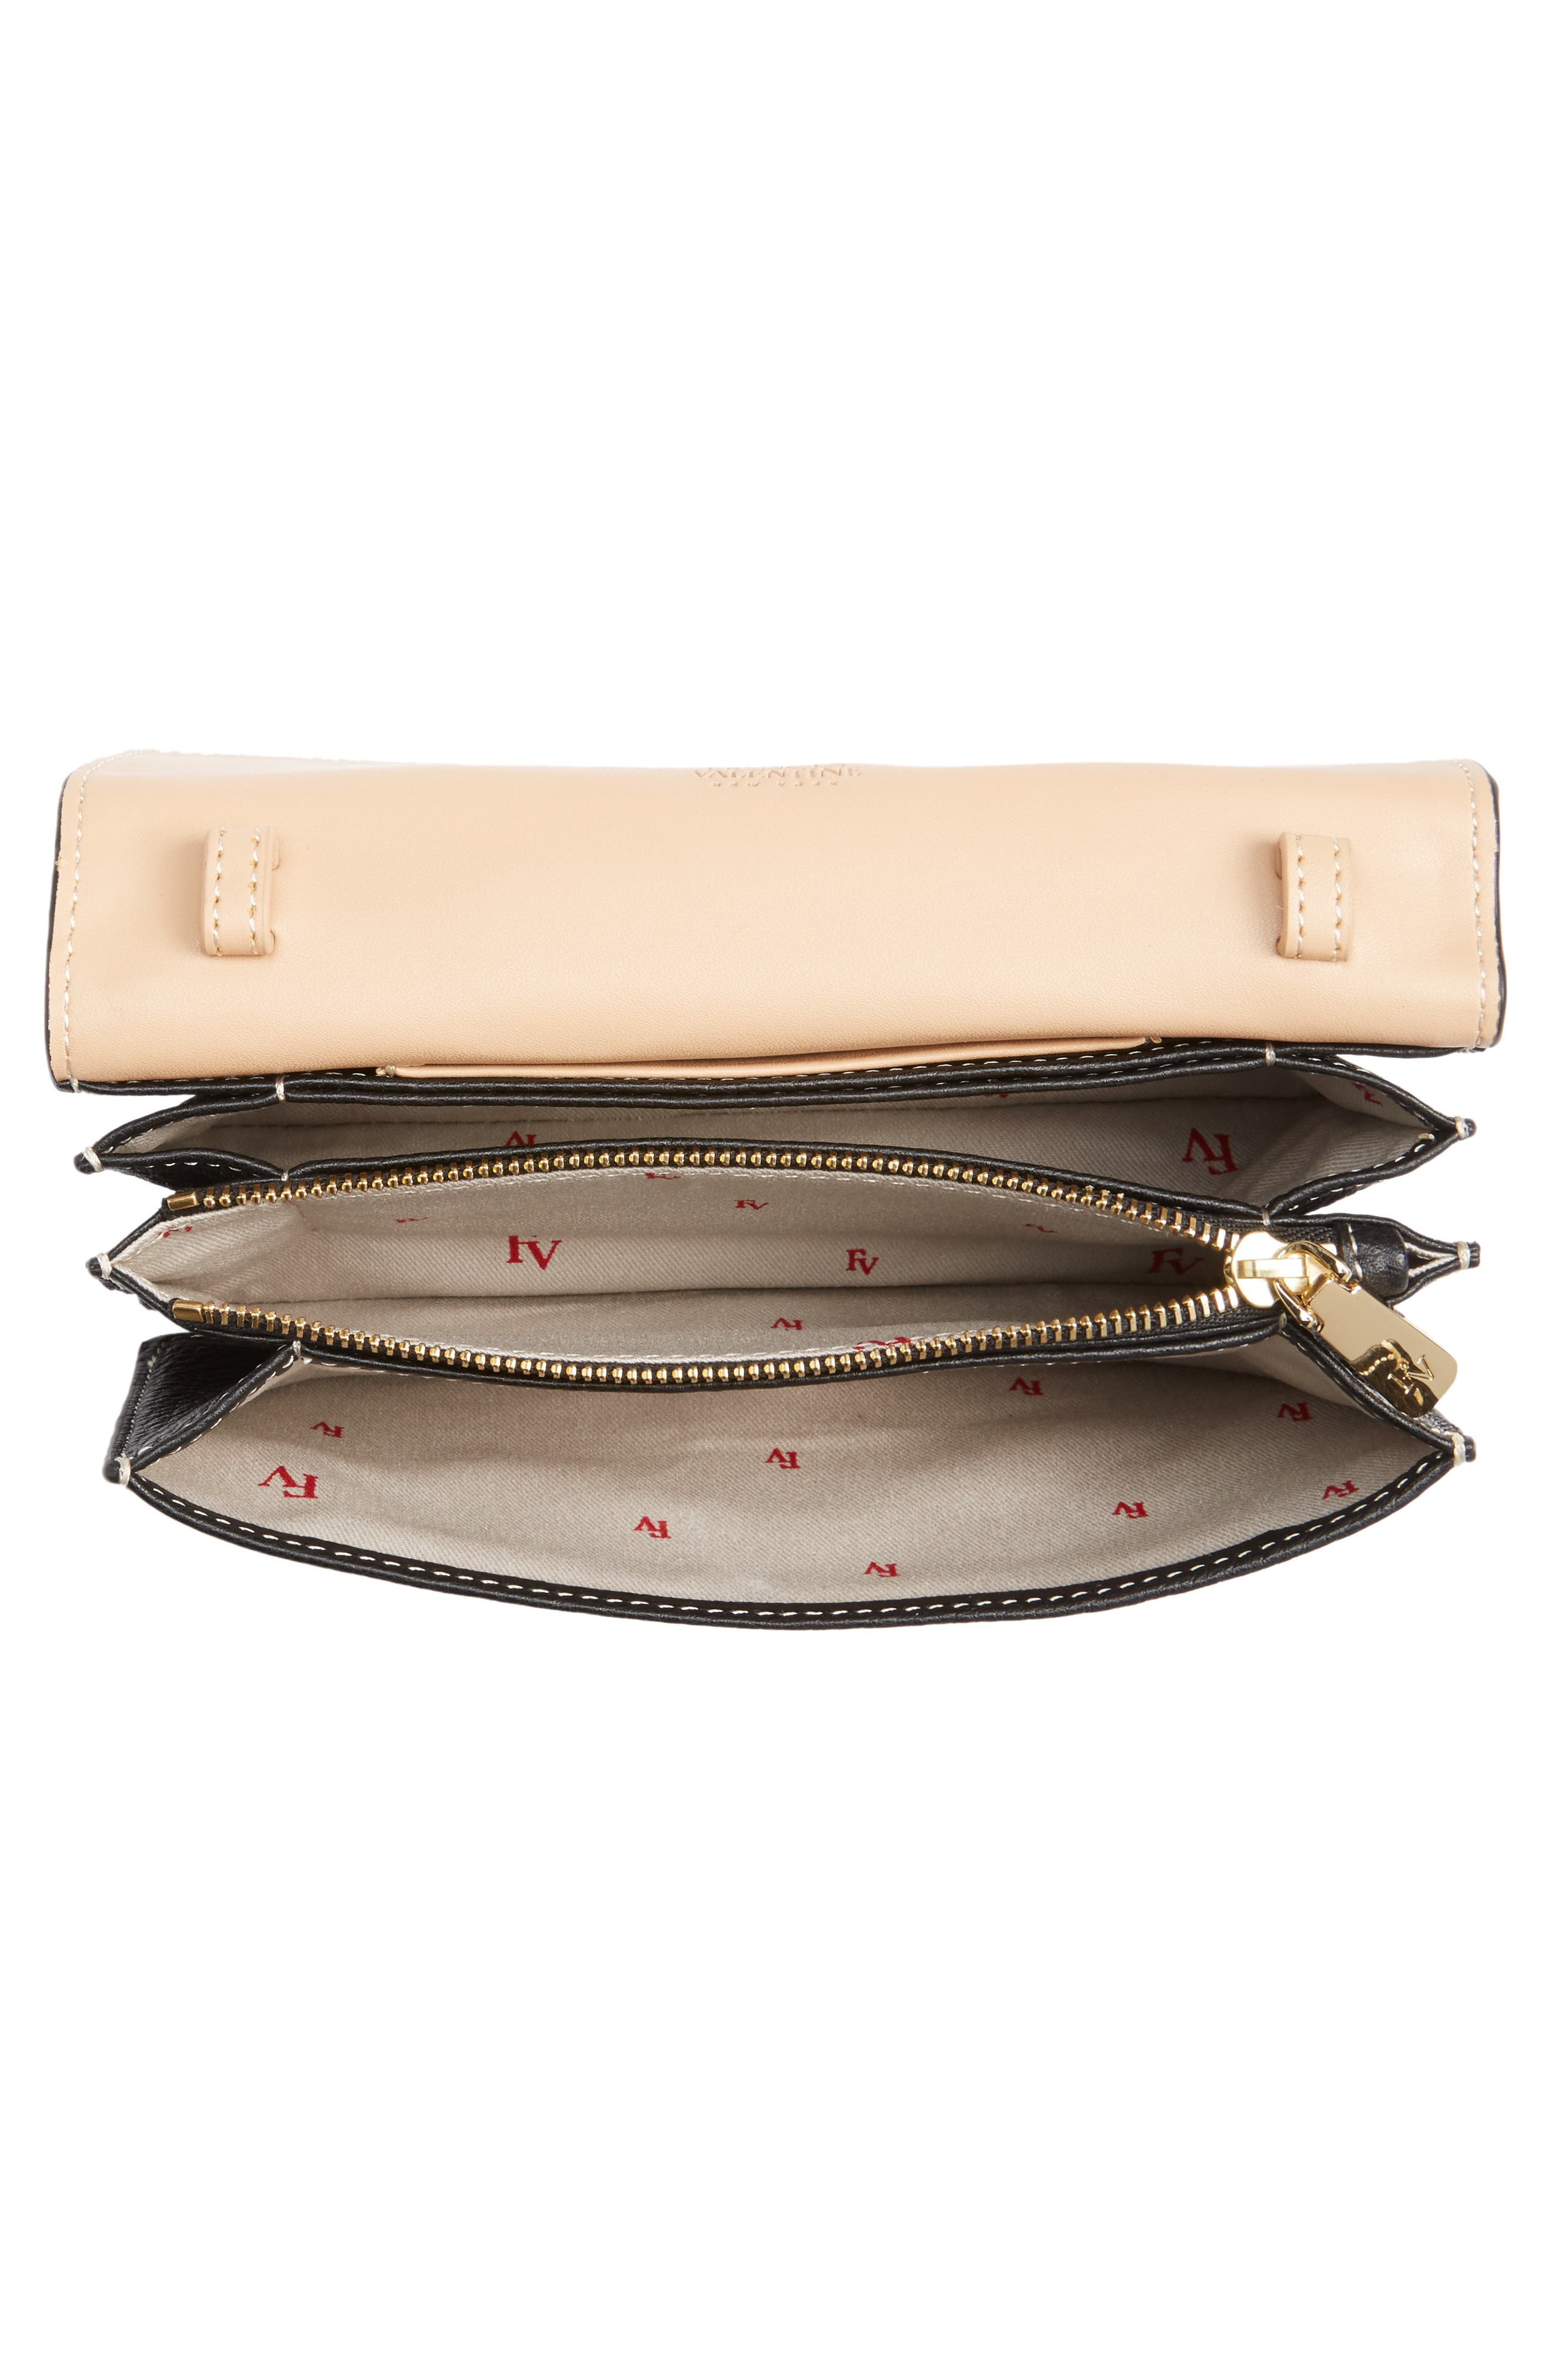 Calfskin Leather Crossbody Wallet,                             Alternate thumbnail 4, color,                             001